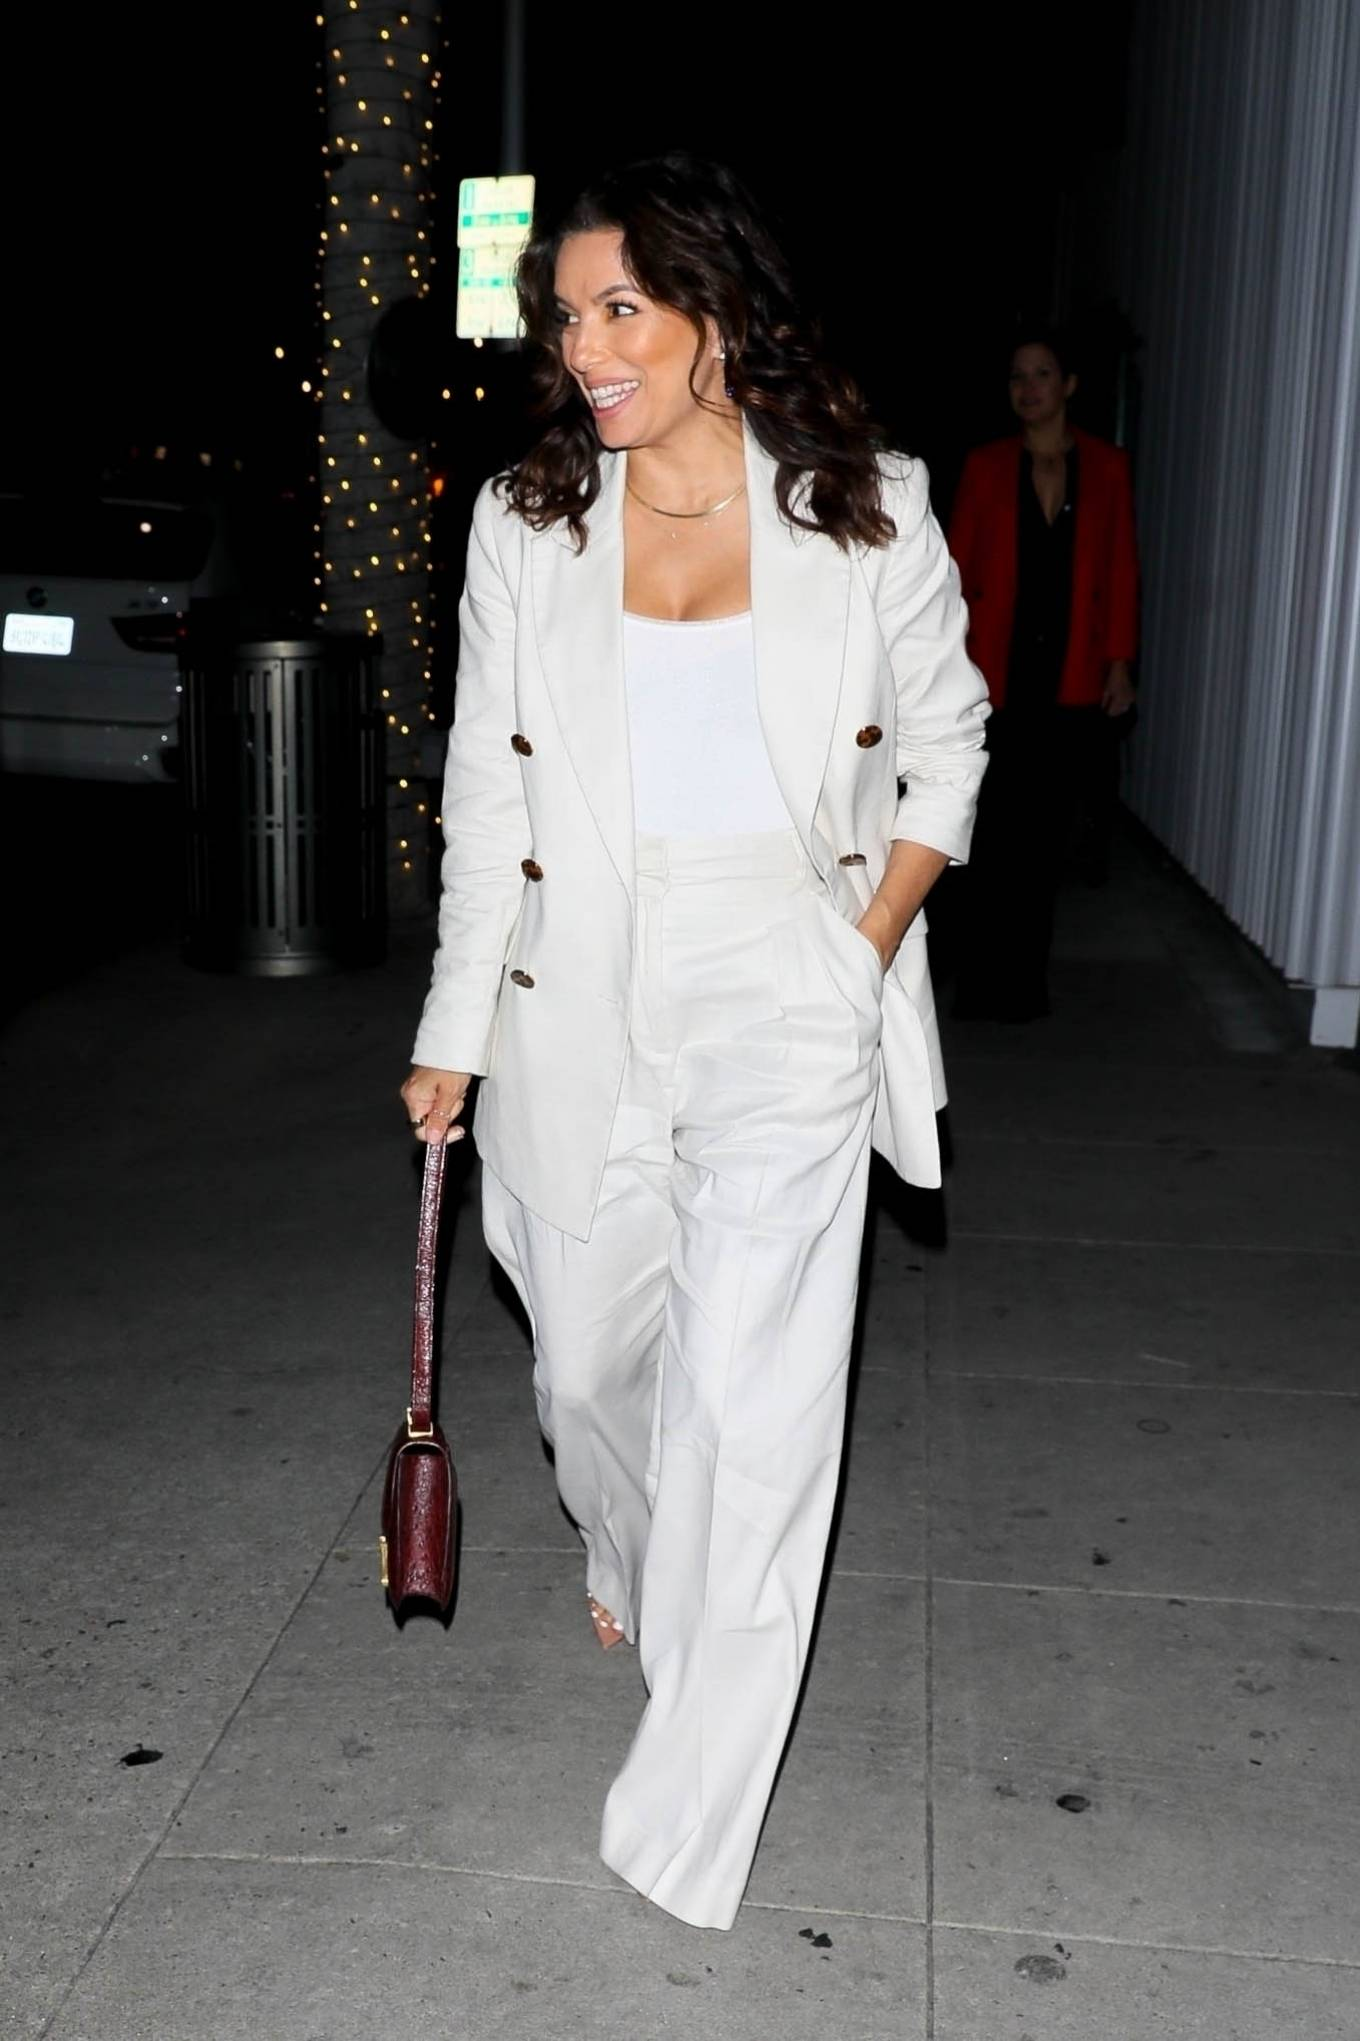 Eva Longoria 2021 : Eva Longoria – in all white as she steps out with friends in Beverly Hills-13